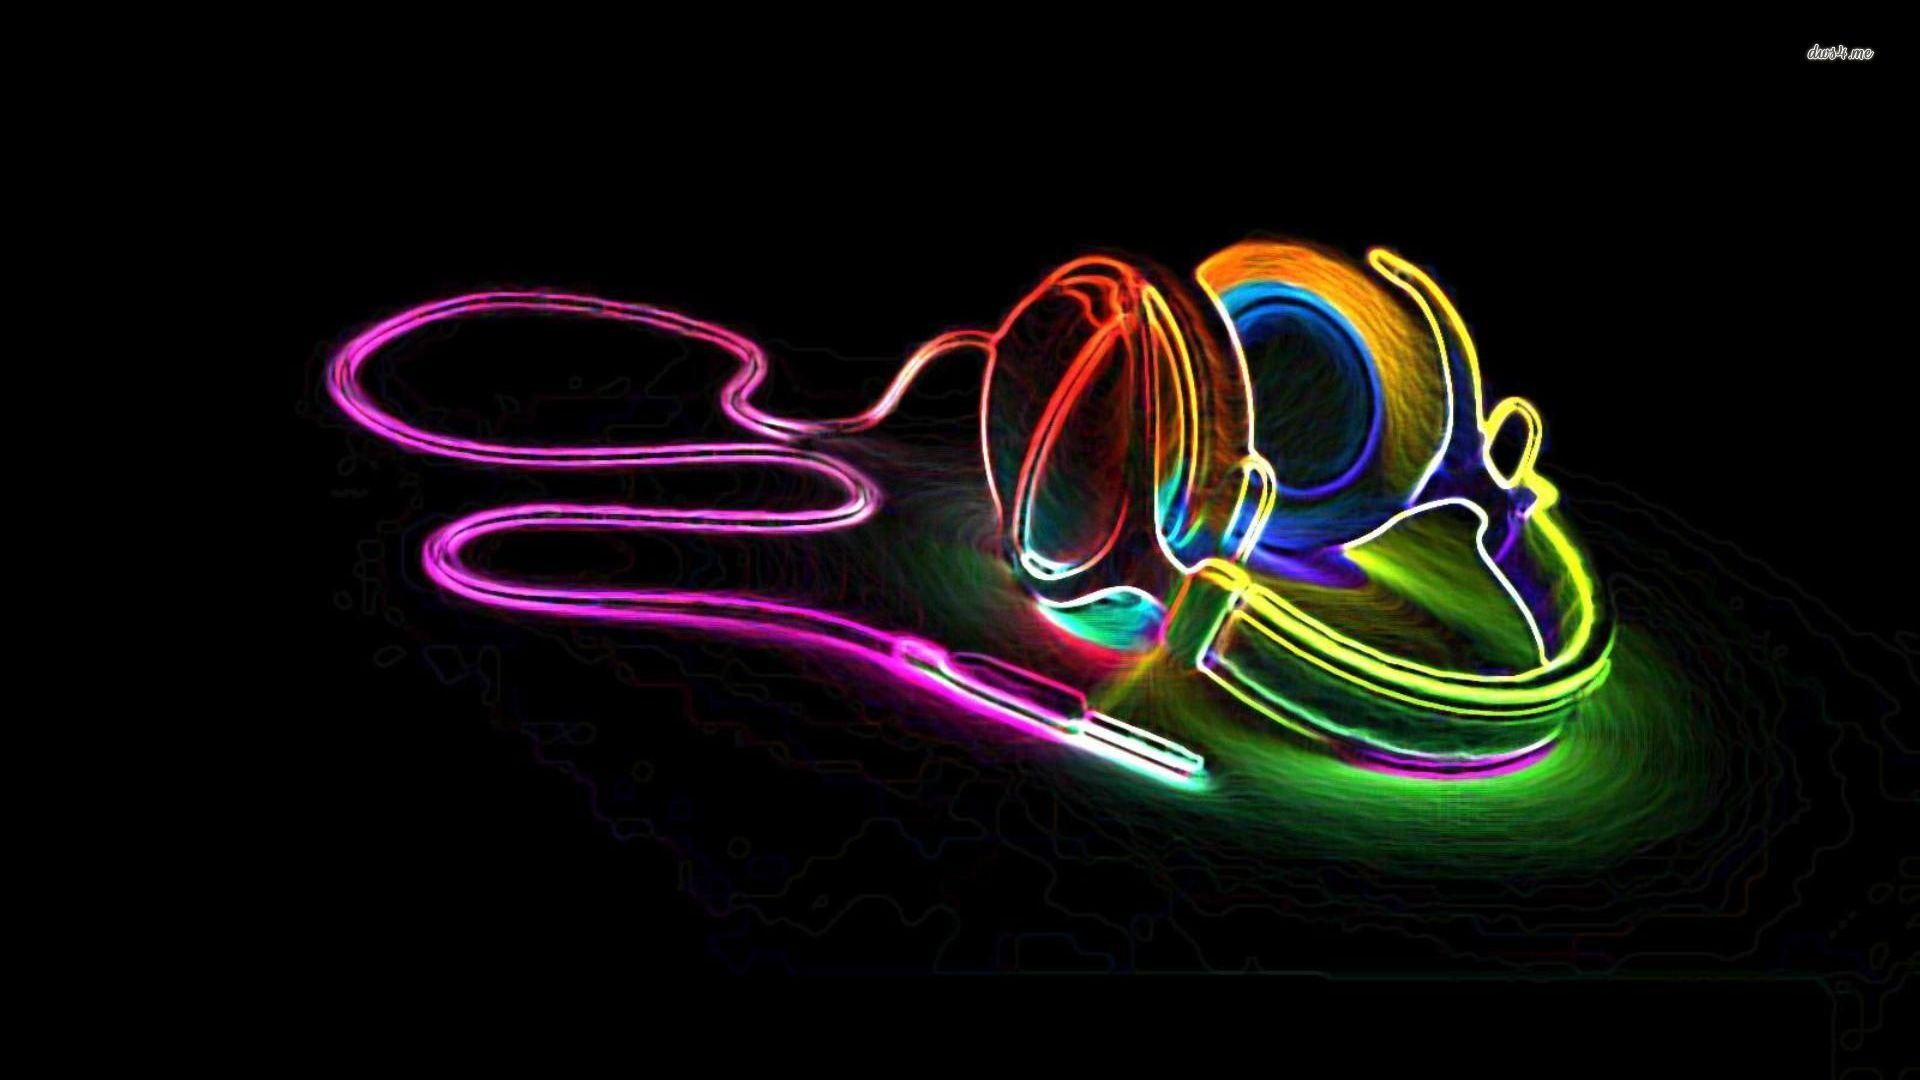 Neon Music Wallpaper Music Wallpaper Neon Light Wallpaper Neon Wallpaper